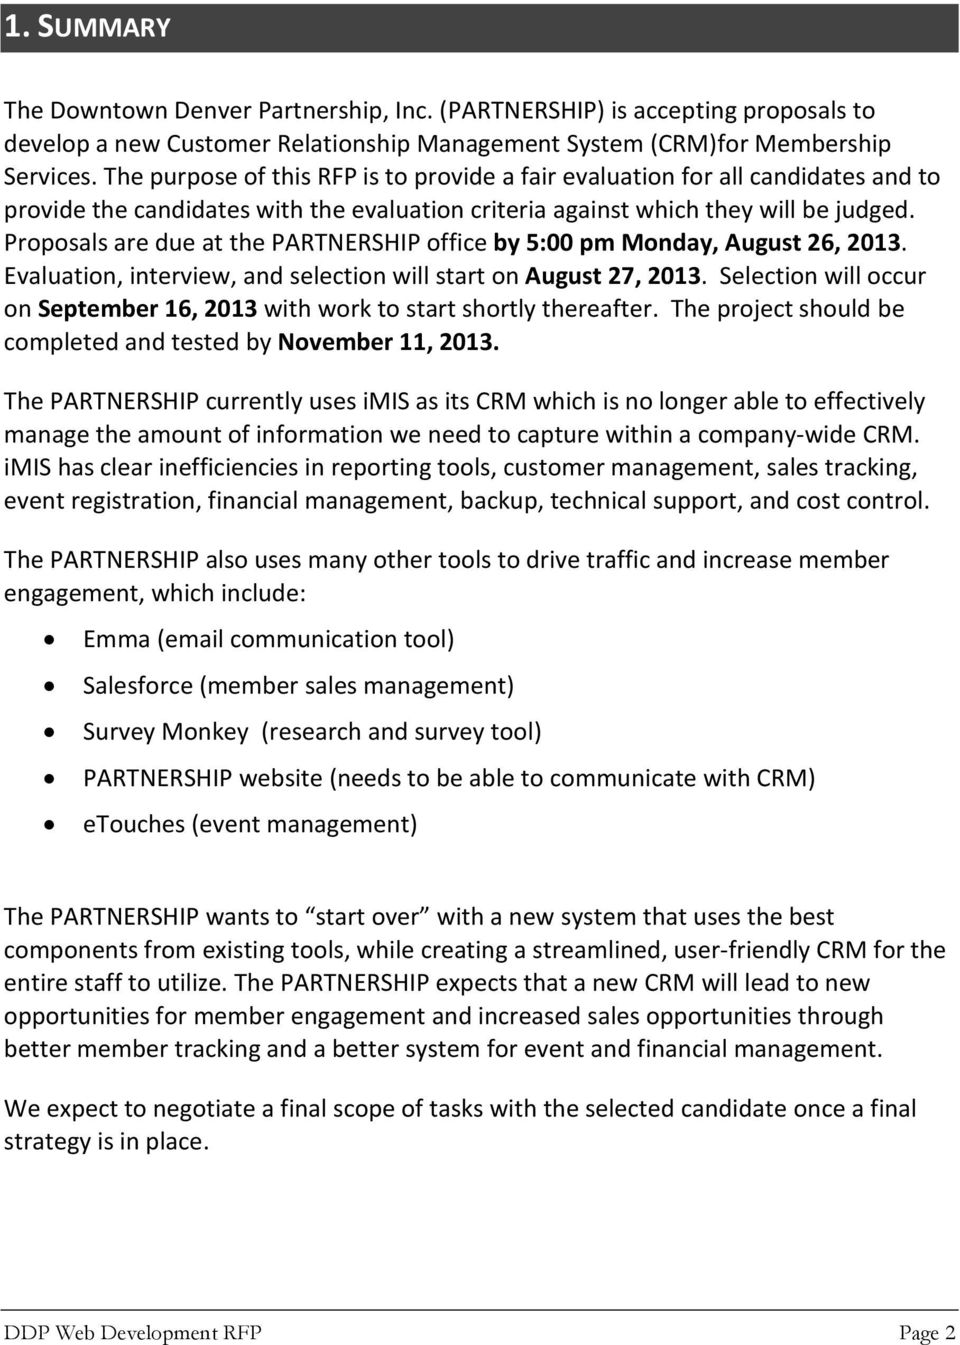 Proposals are due at the PARTNERSHIP office by 5:00 pm Monday, August 26, 2013. Evaluation, interview, and selection will start on August 27, 2013.